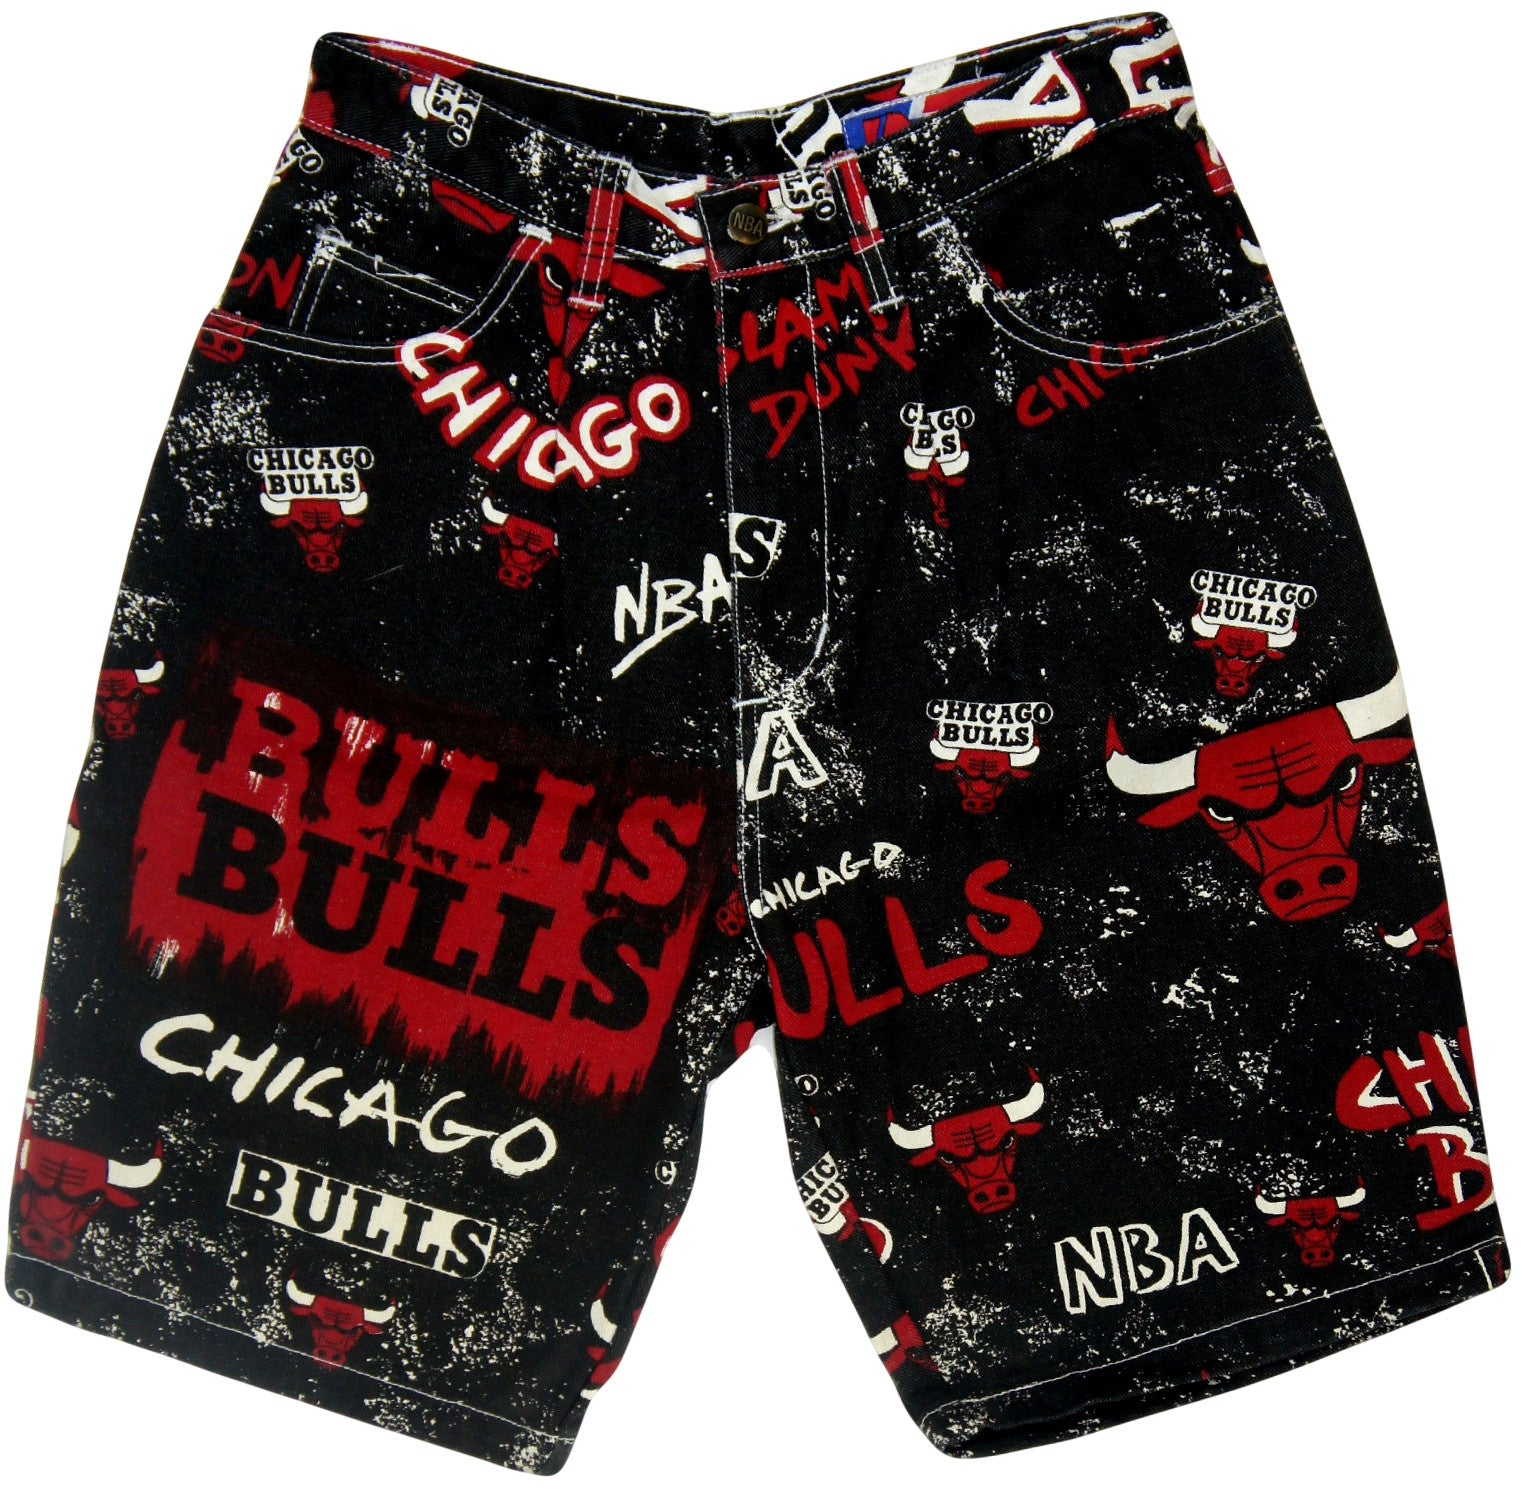 Bulls Vintage Pro Player Shorts - And Still